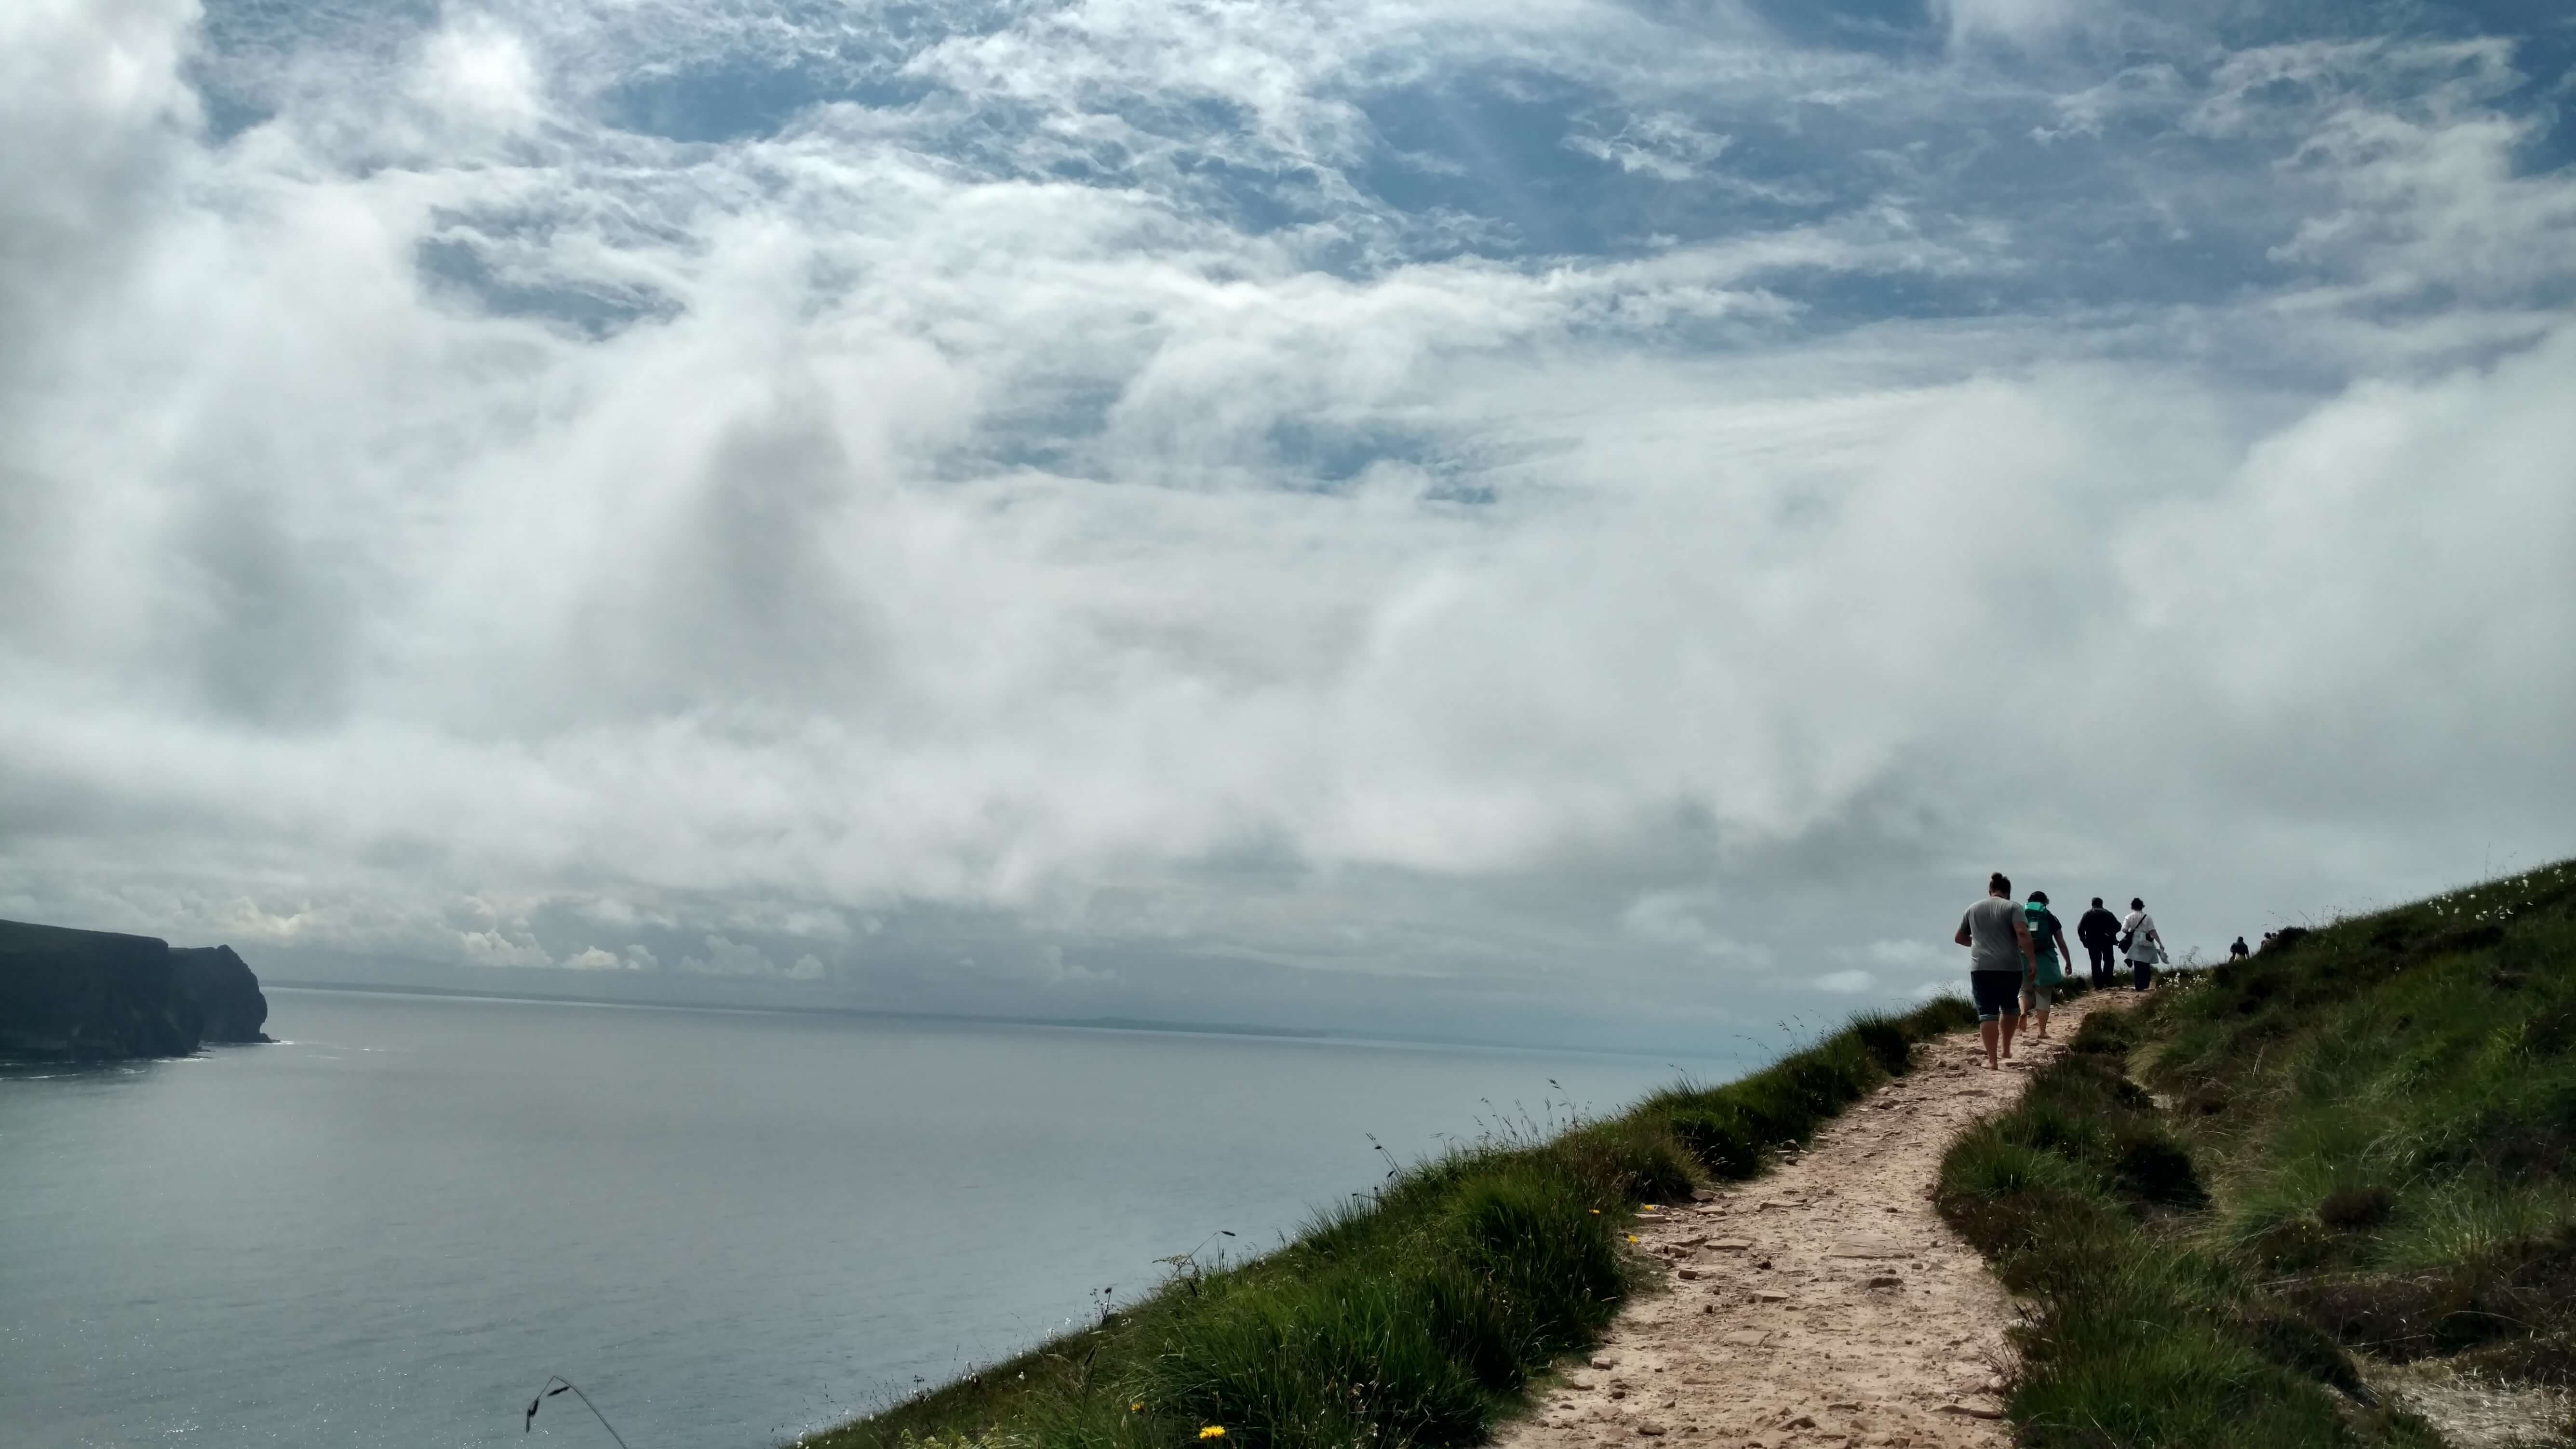 Visitors climbing the path leading to the Old Man of Hoy